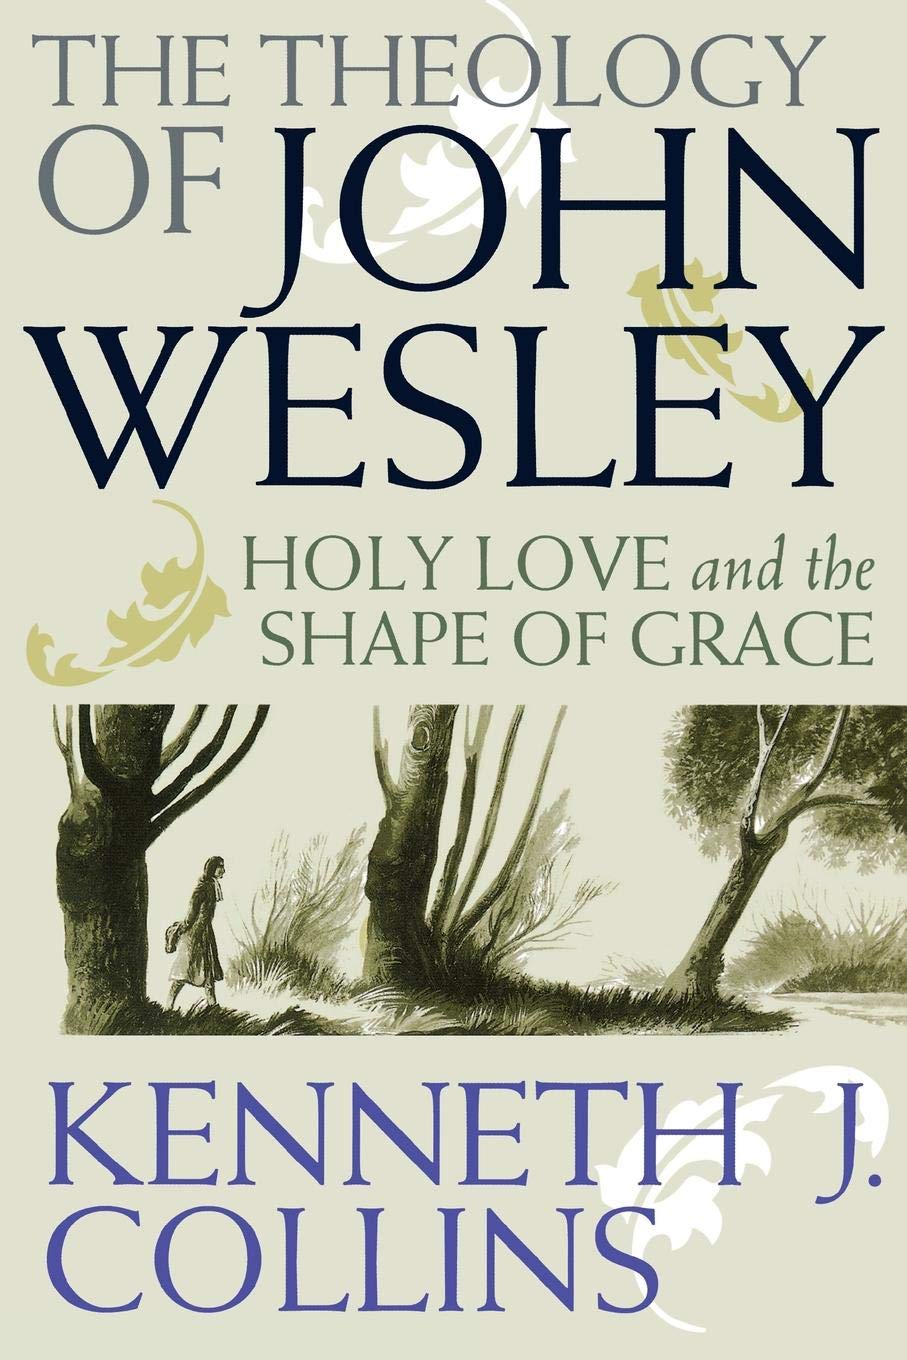 The Theology of John Wesley: Holy Love and the Shape of Grace: Kenneth J.  Collins: 9780687646333: Amazon.com: Books